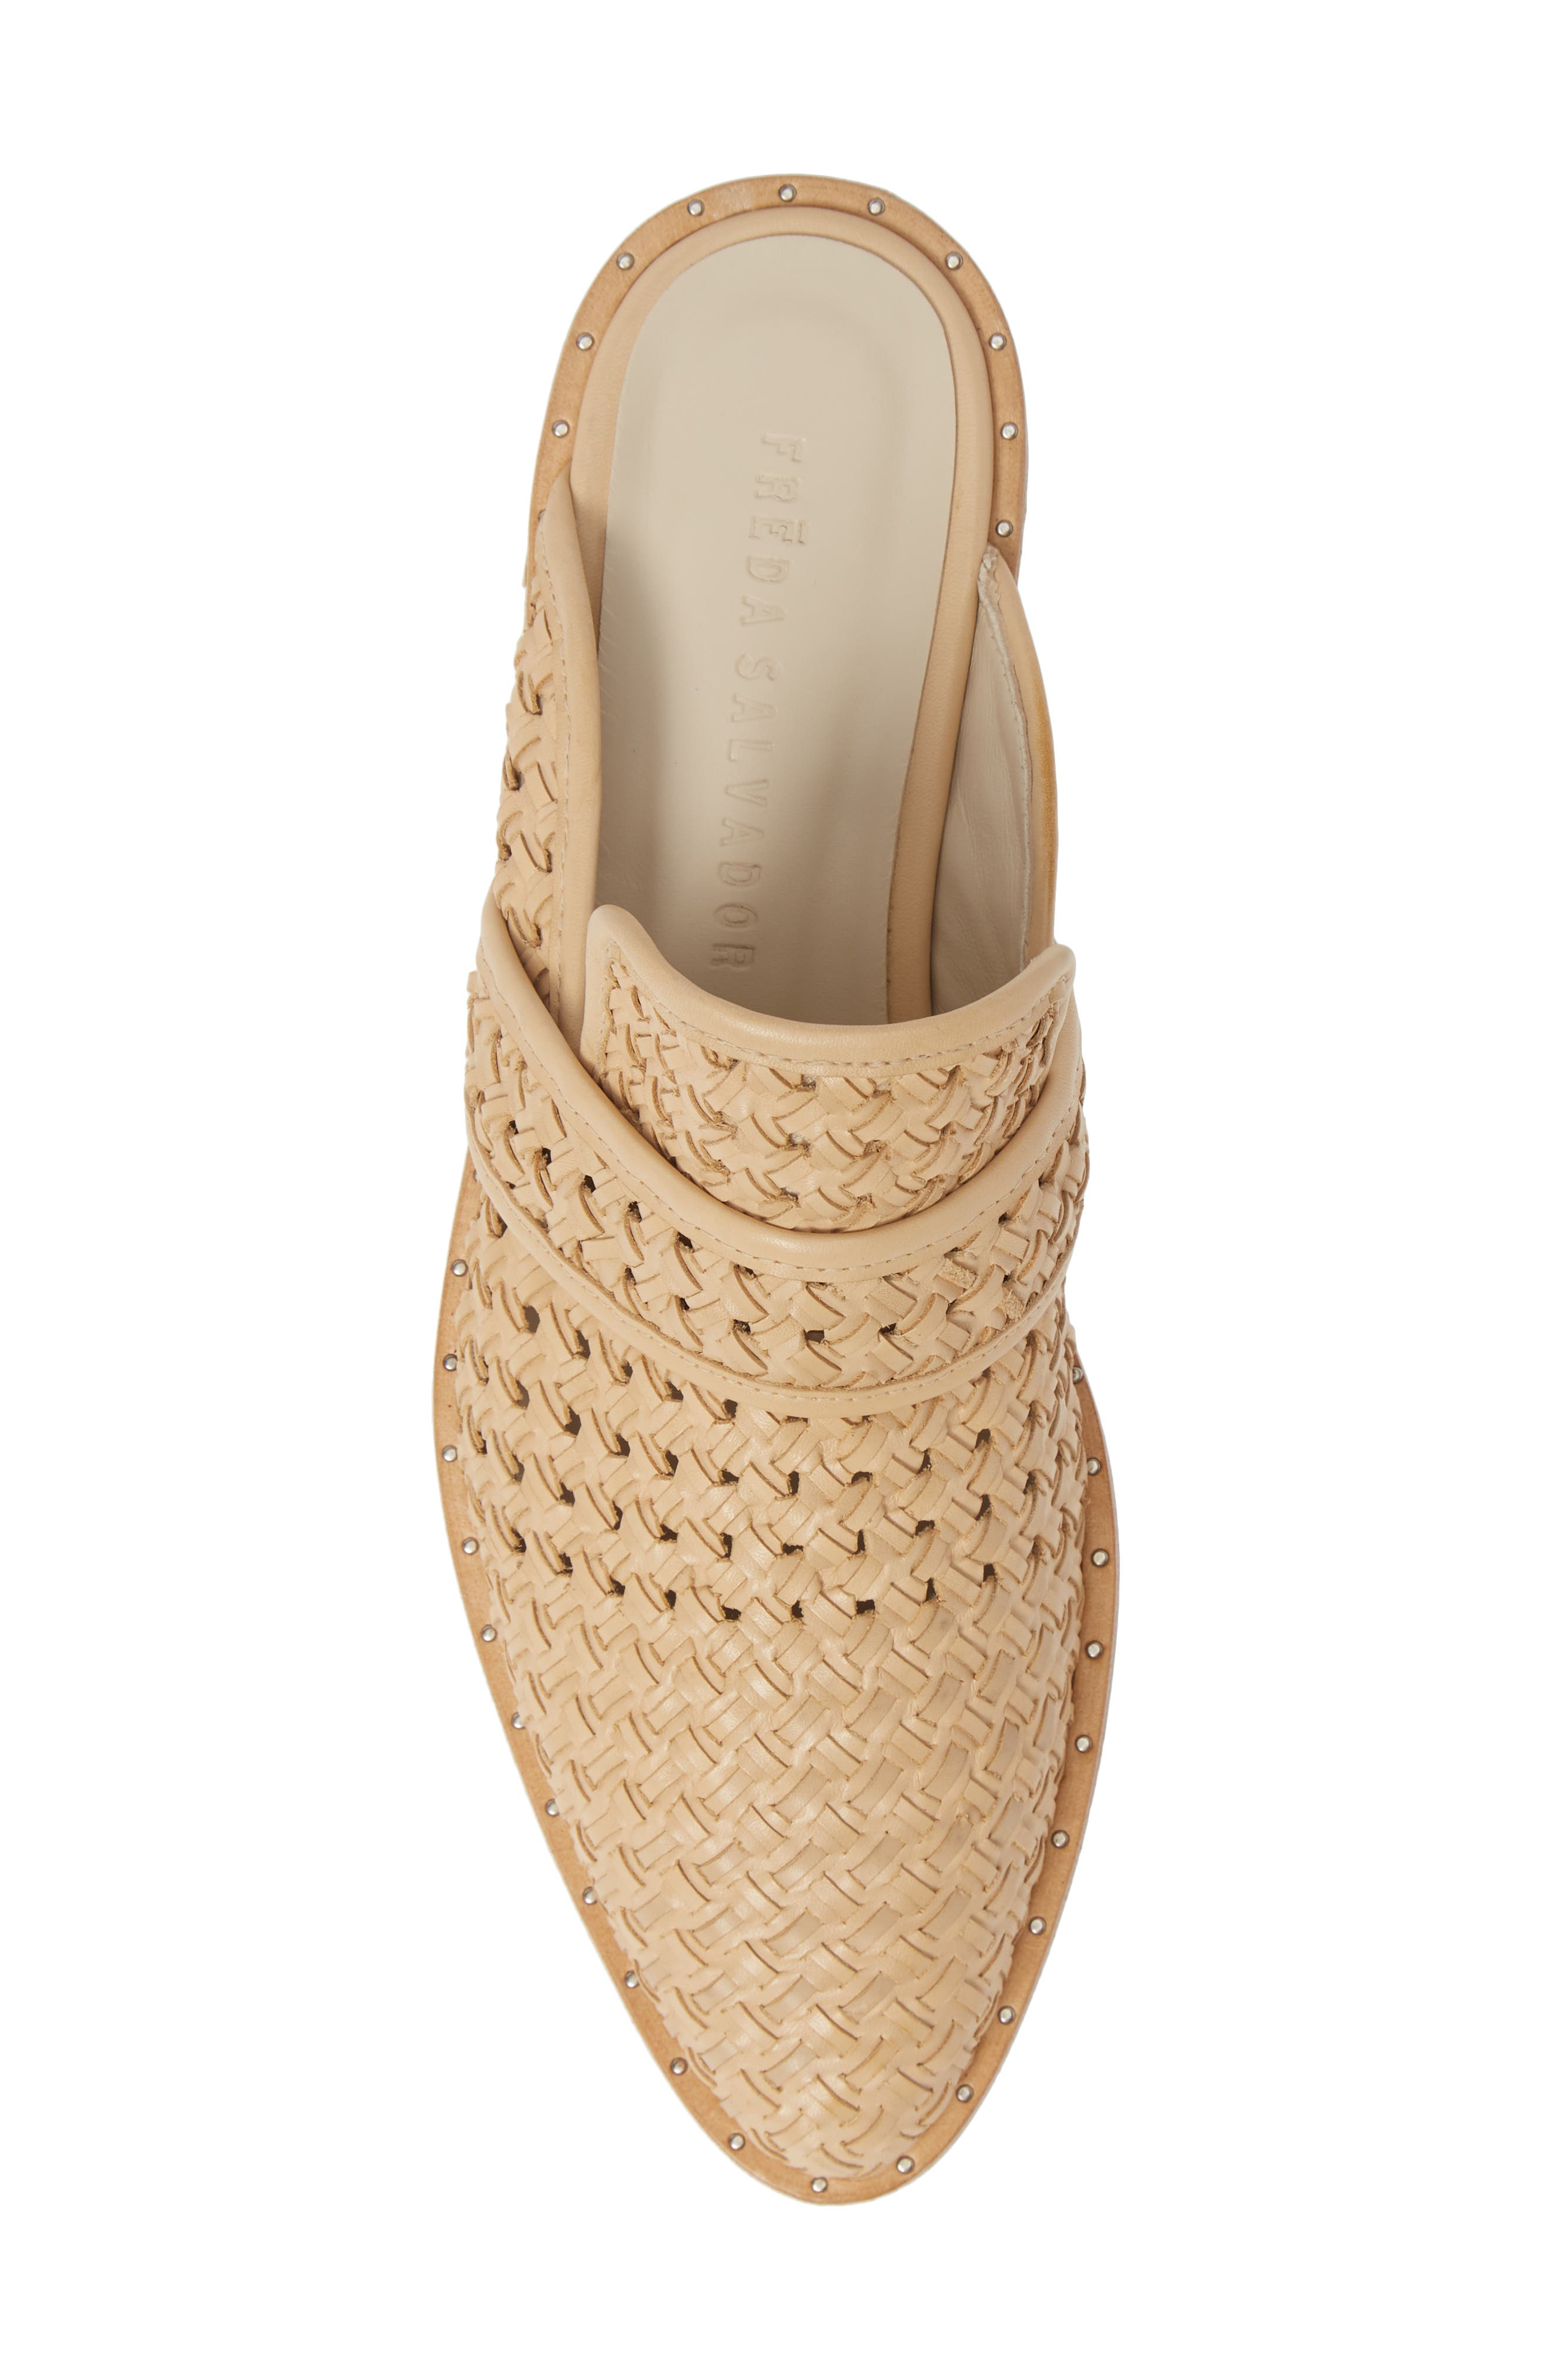 Keen Loafer Mule,                             Alternate thumbnail 5, color,                             NUDE WOVEN